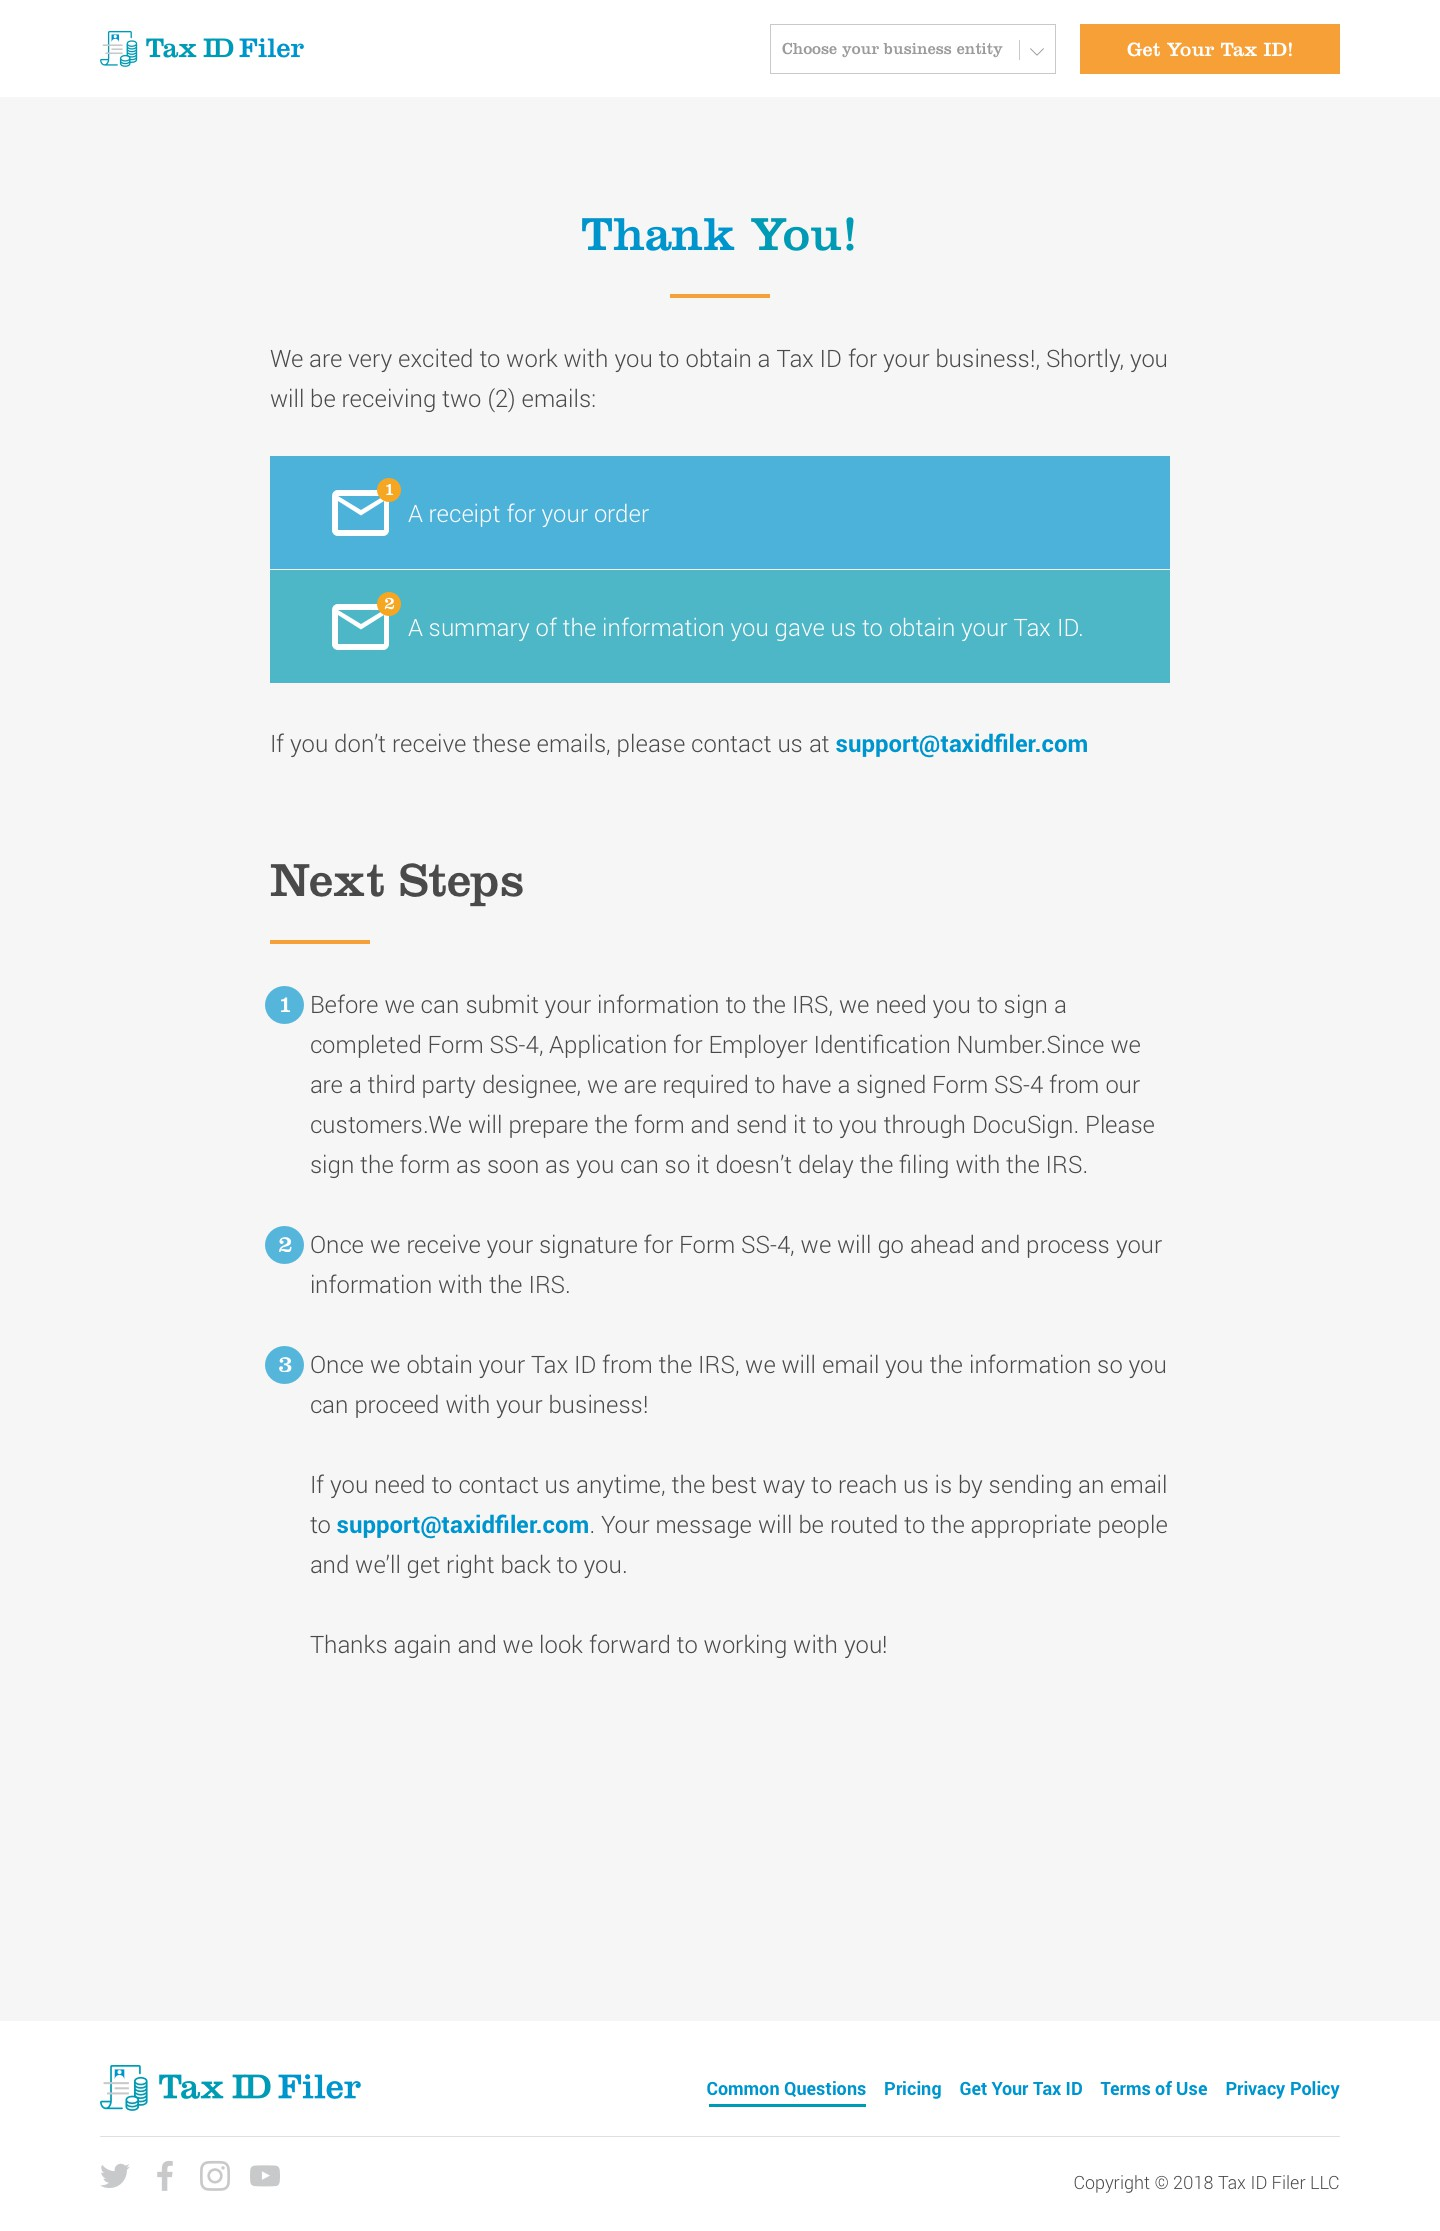 Designs for 3 additional webpages